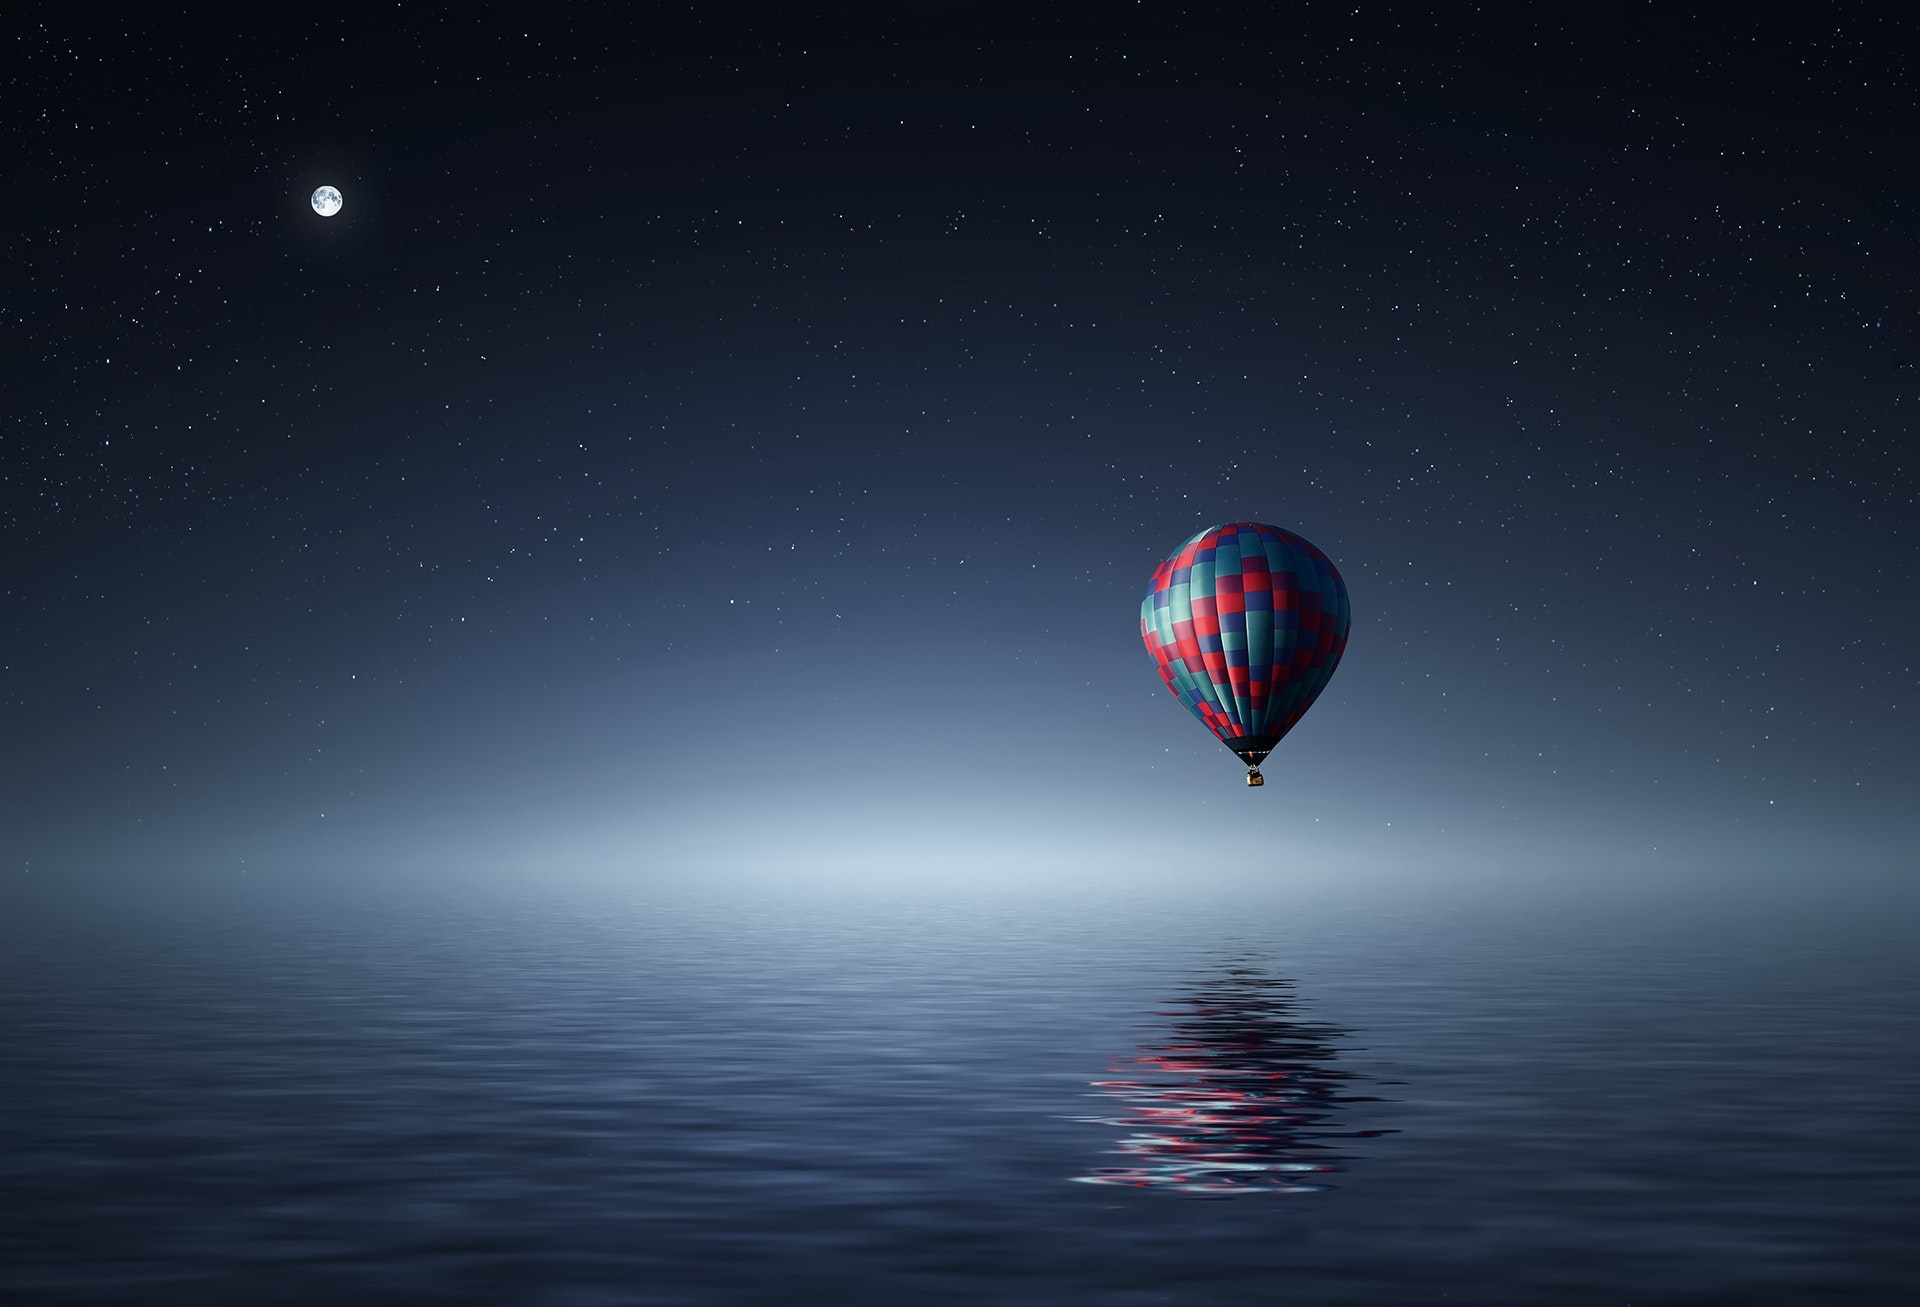 Red and blue hot air balloon floating on air on body of water during night time photo